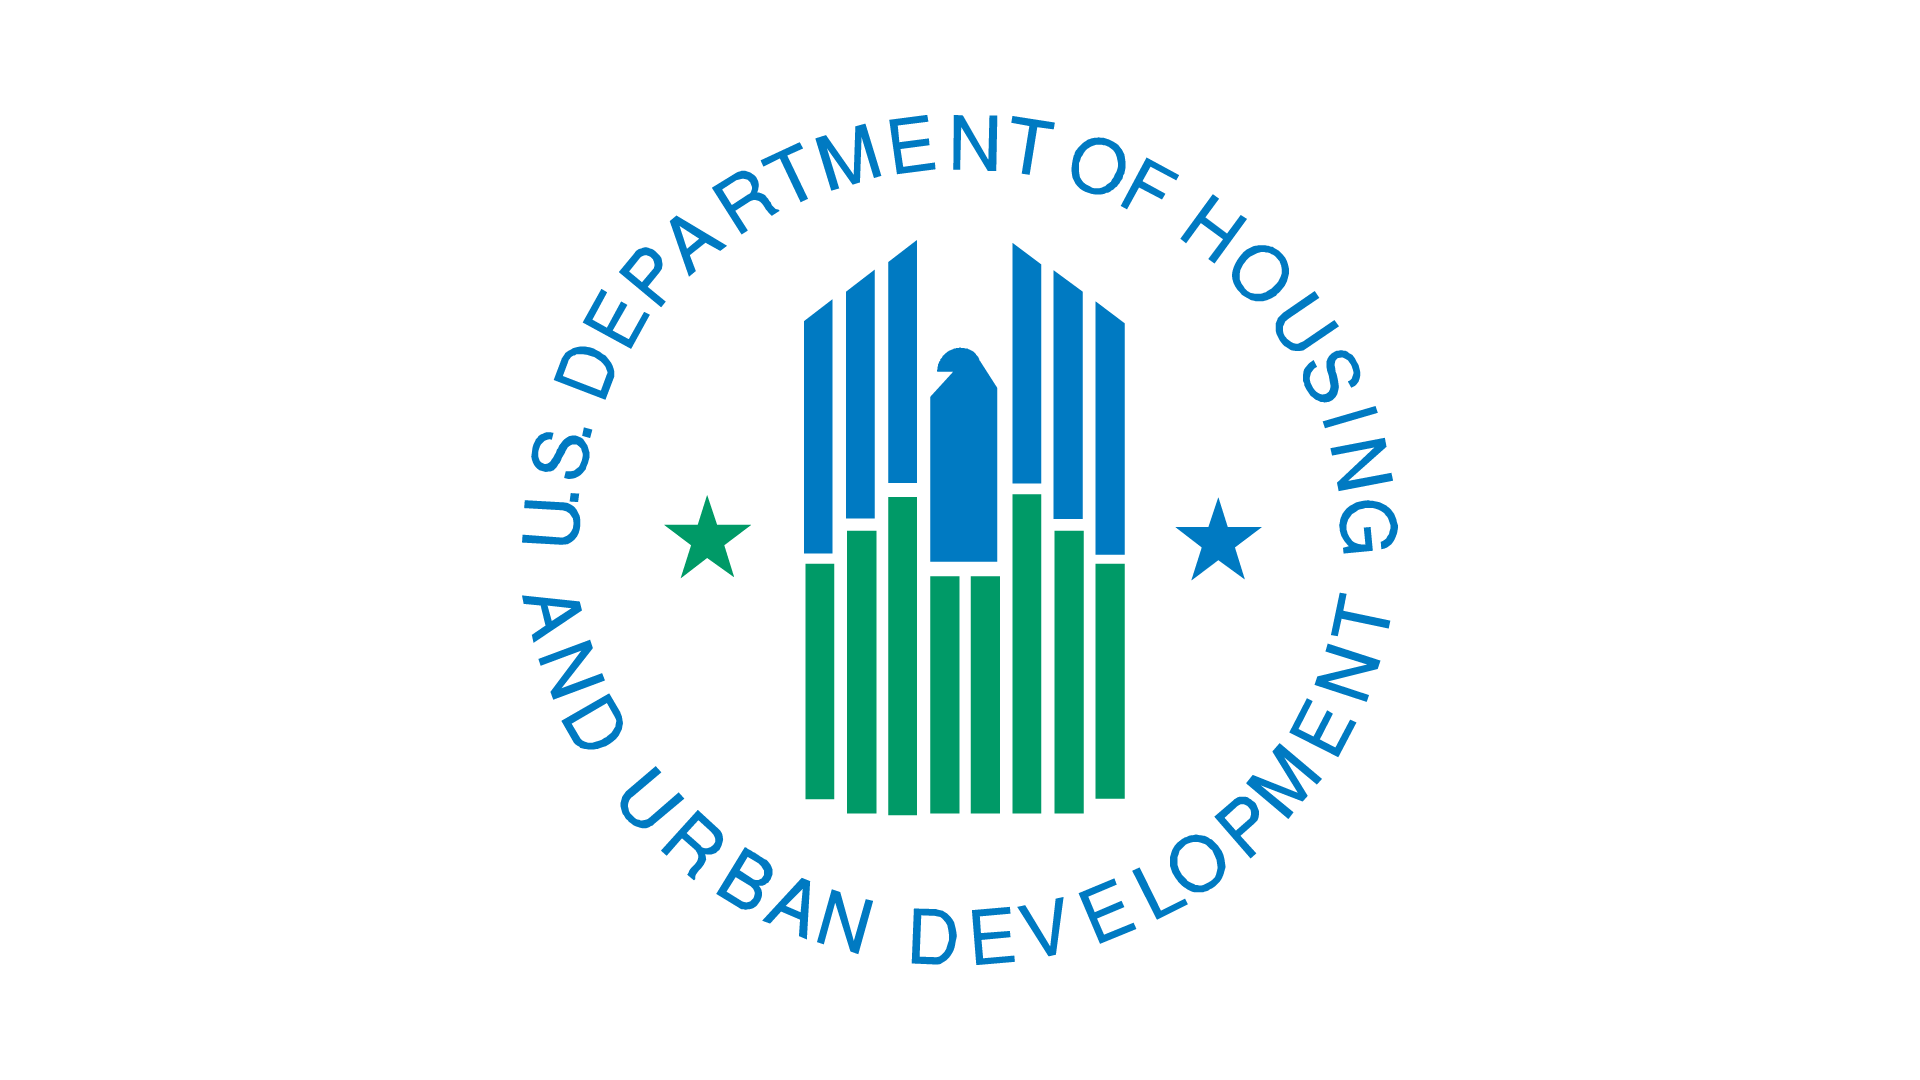 the u.s. department of housing and urban development (hud) rings